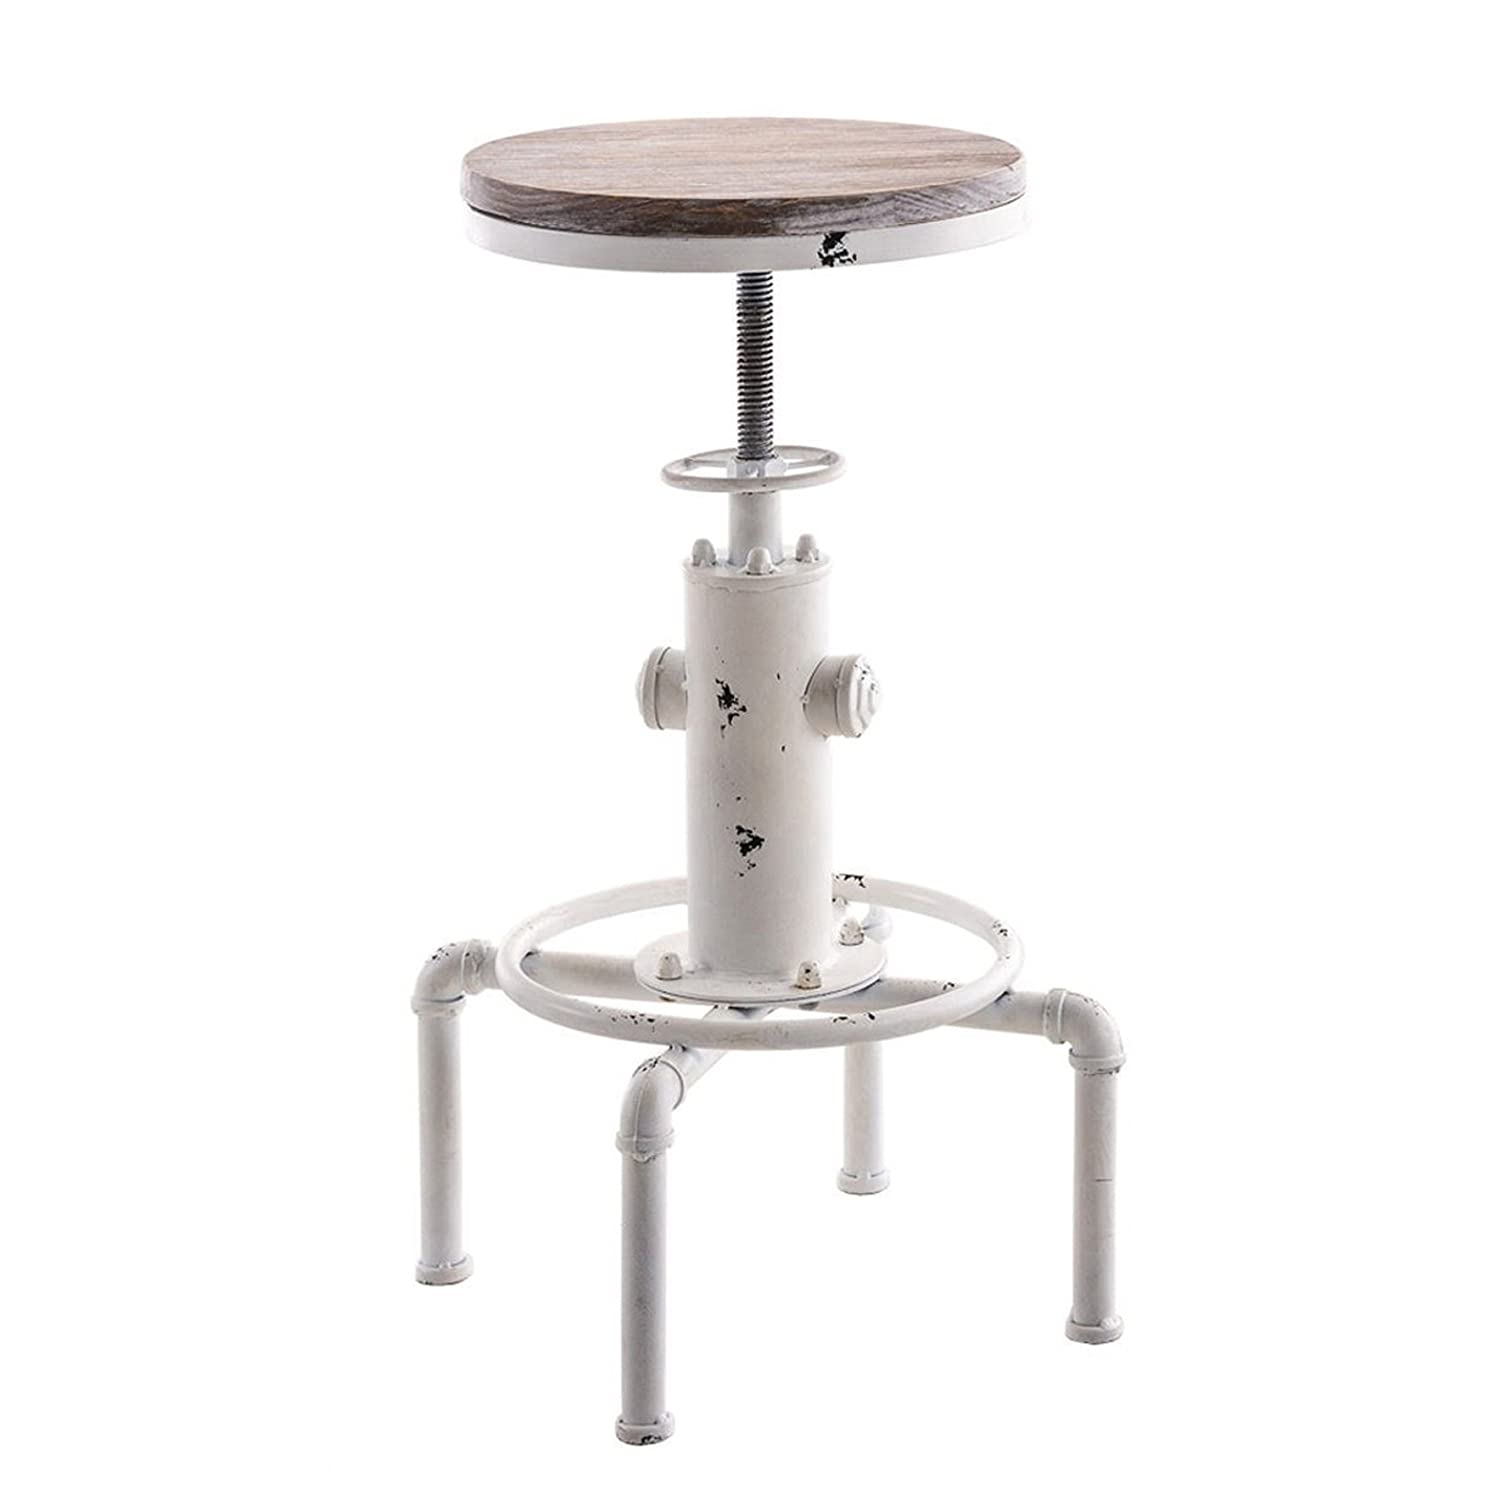 Topower American Antique Vintage Industrial Barstool Solid Wood Water Pipe Fire Hydrant Design Cafe Coffee Industrial Bar Stool (Antique White, 1)